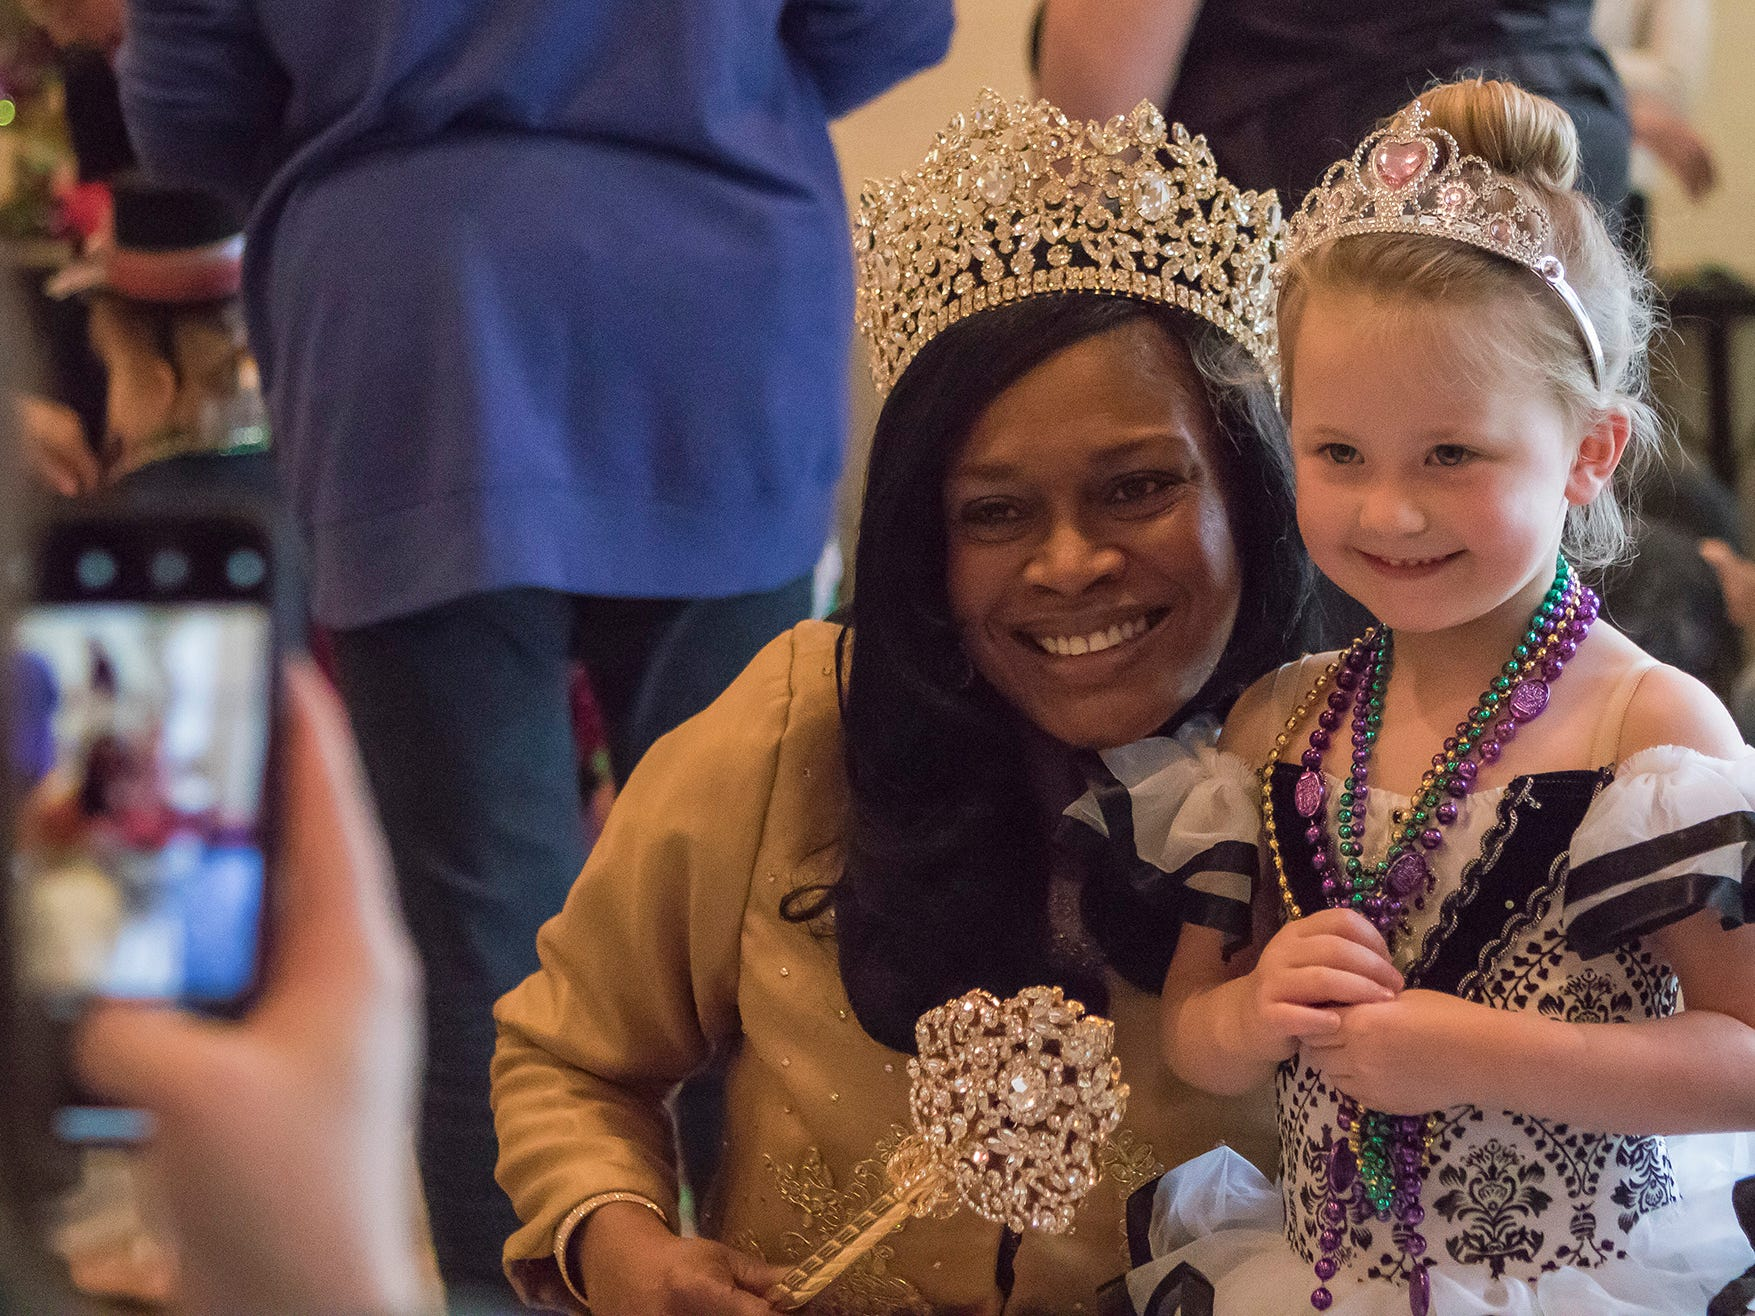 Blanche Betz, the Krewe of Janus Mardi Gras queen, and Charlie Prichard, 3, pose for a photo during the Krewe of Munchkins parade at St. Paul's Day School in Monroe, La. on Feb. 11.